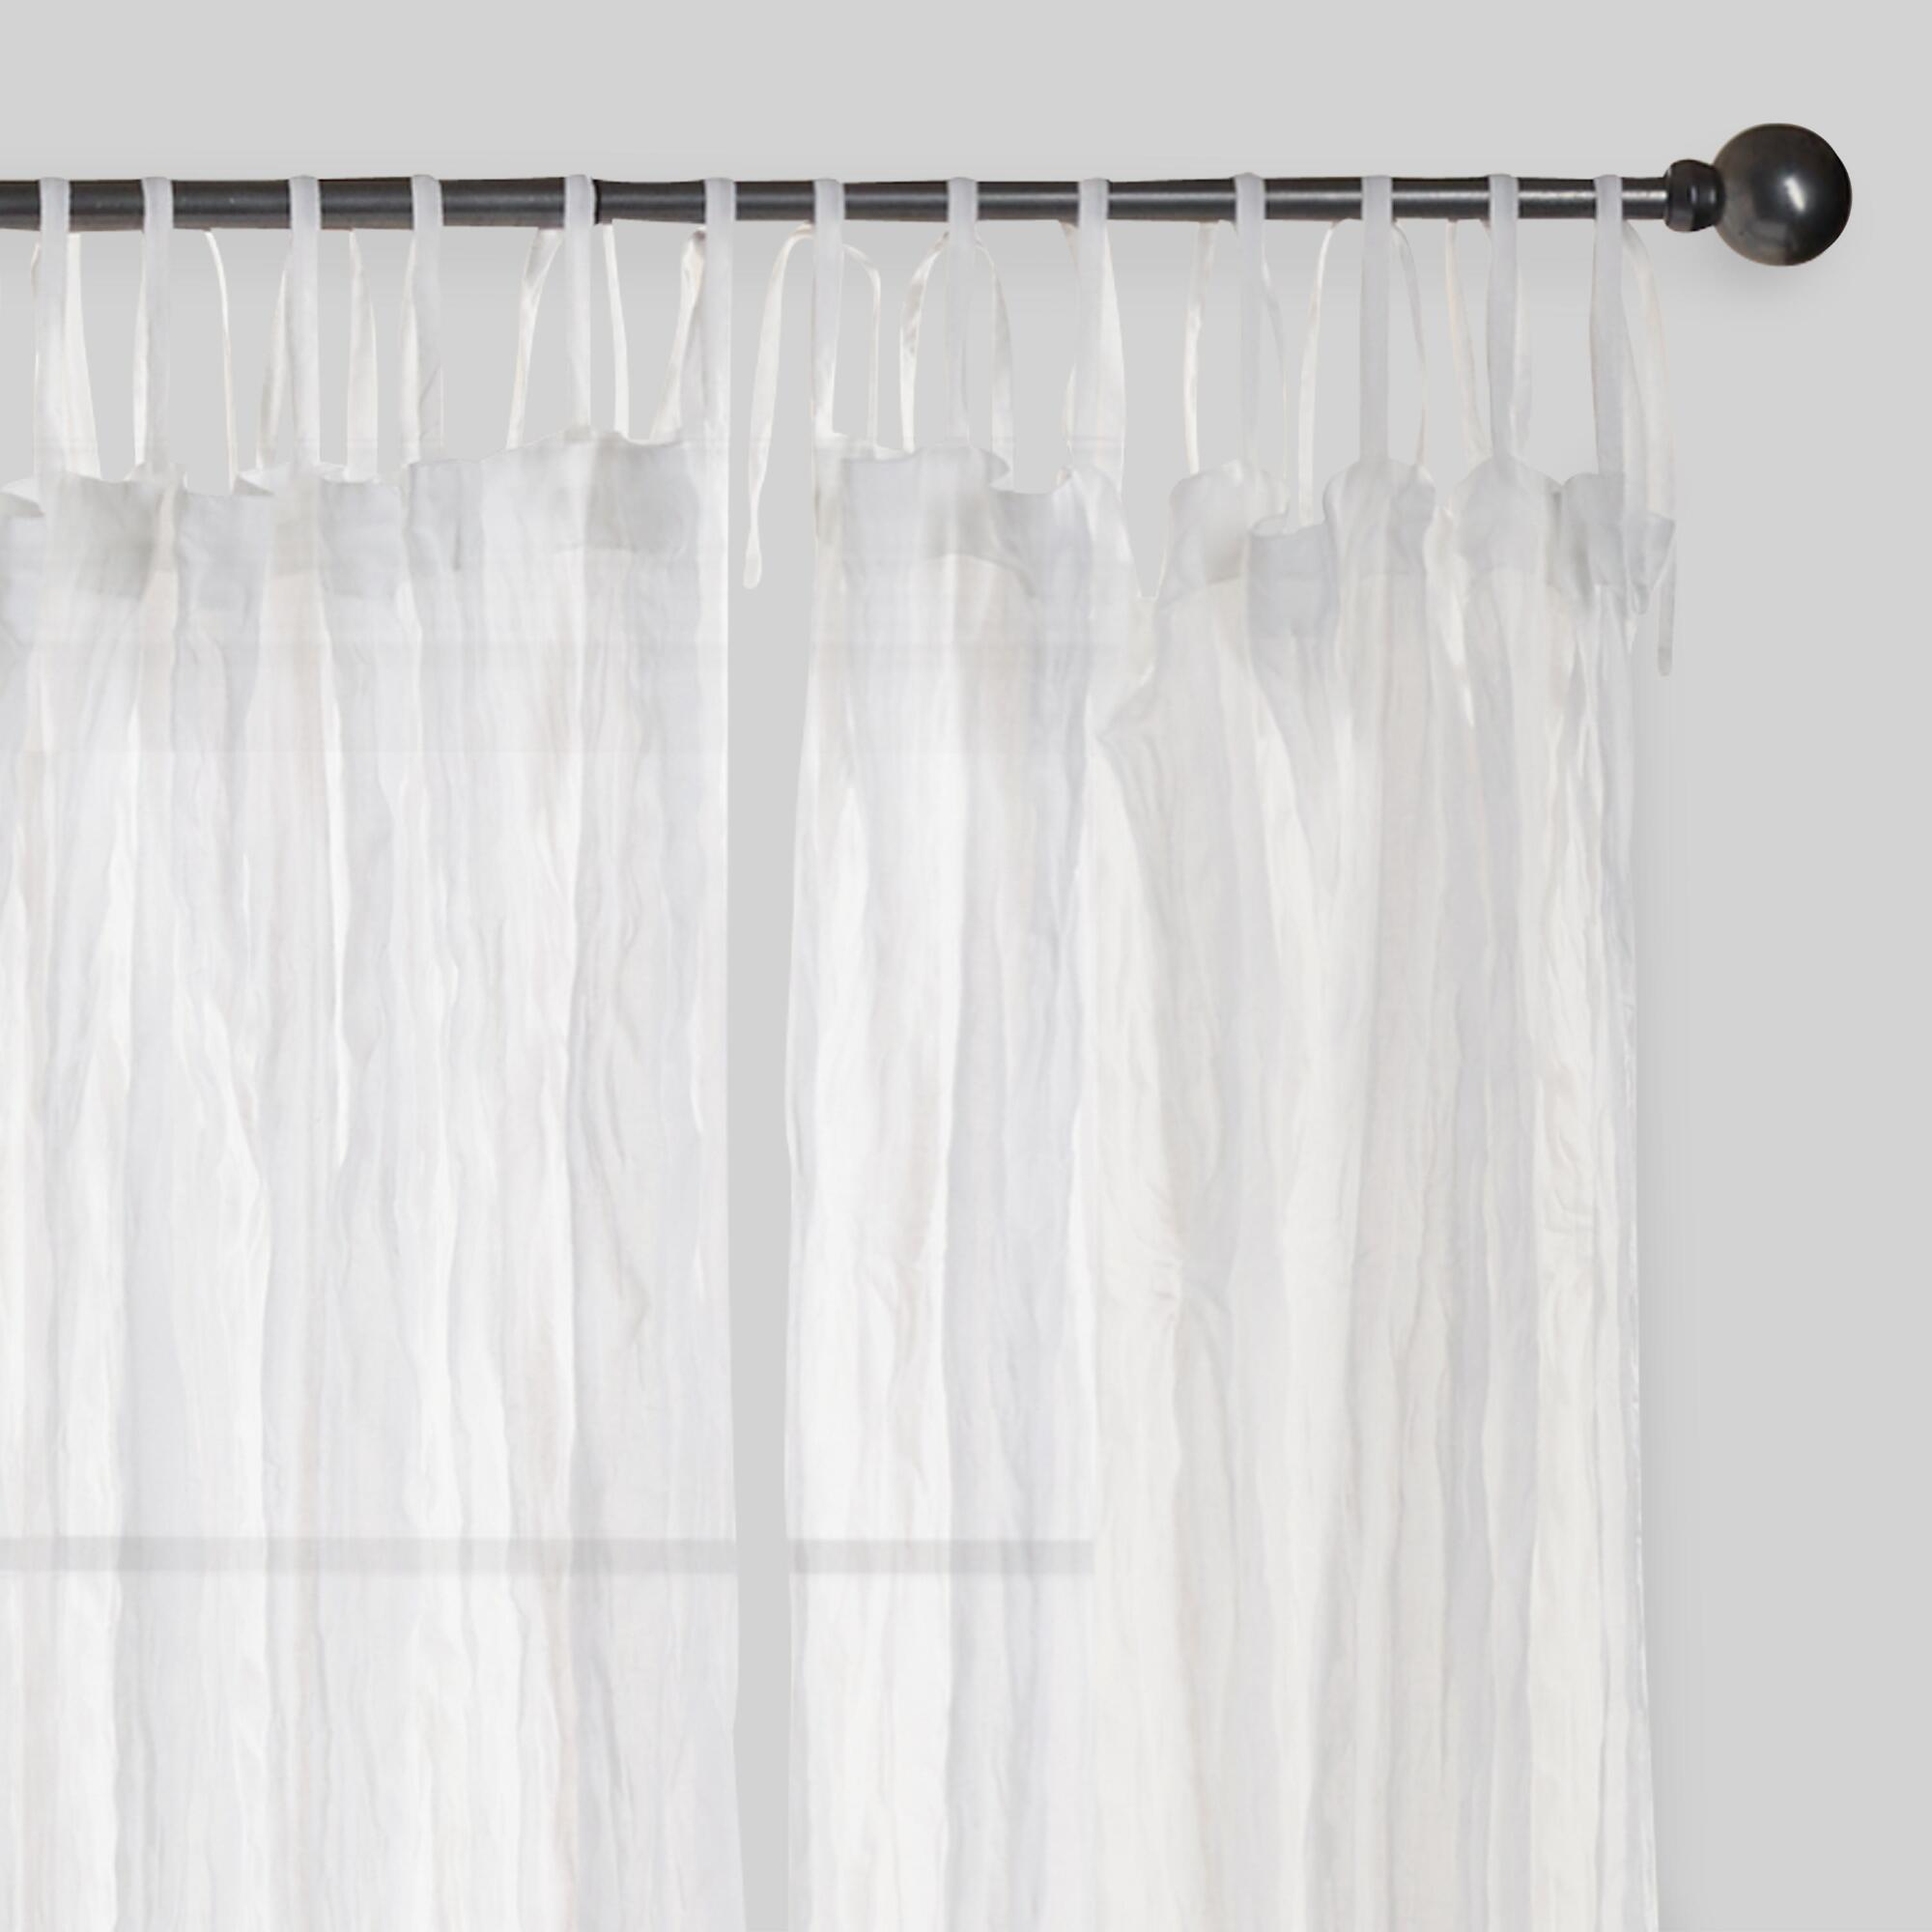 Sheer curtain texture - White Crinkle Sheer Voile Cotton Curtains Set Of 2